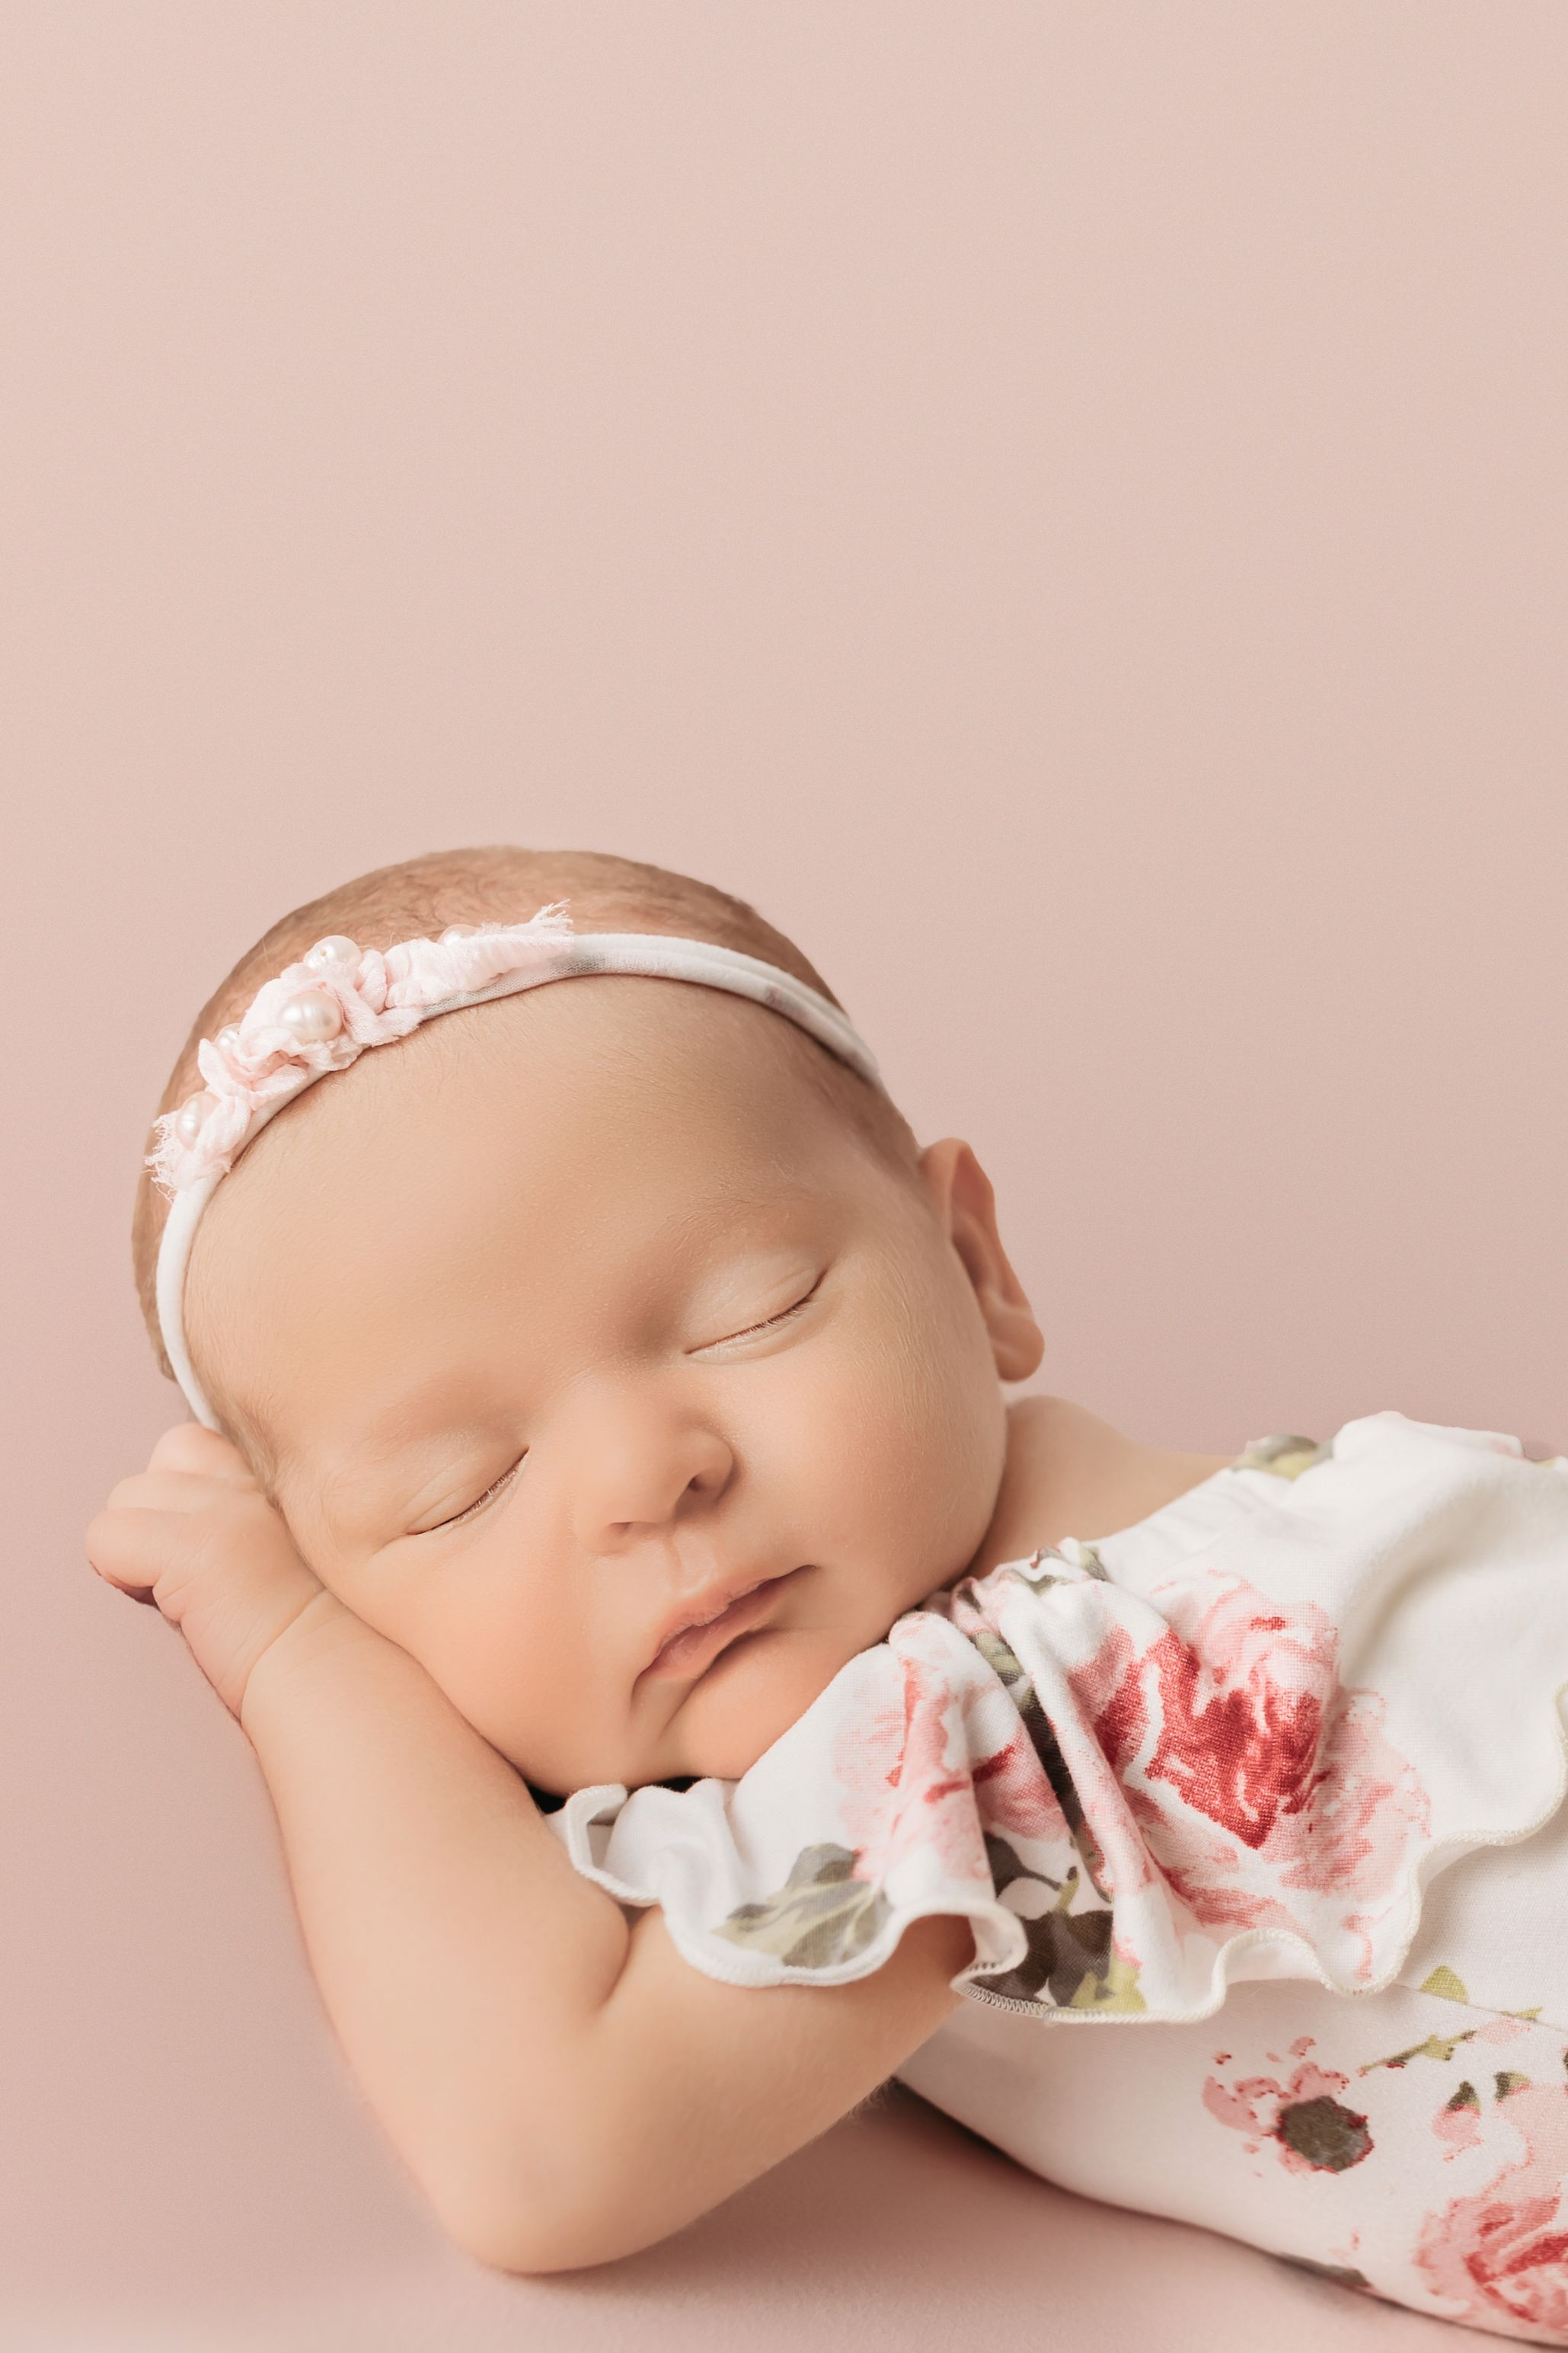 Virginia Beach newborn photographer, Virginia Beach maternity photographer